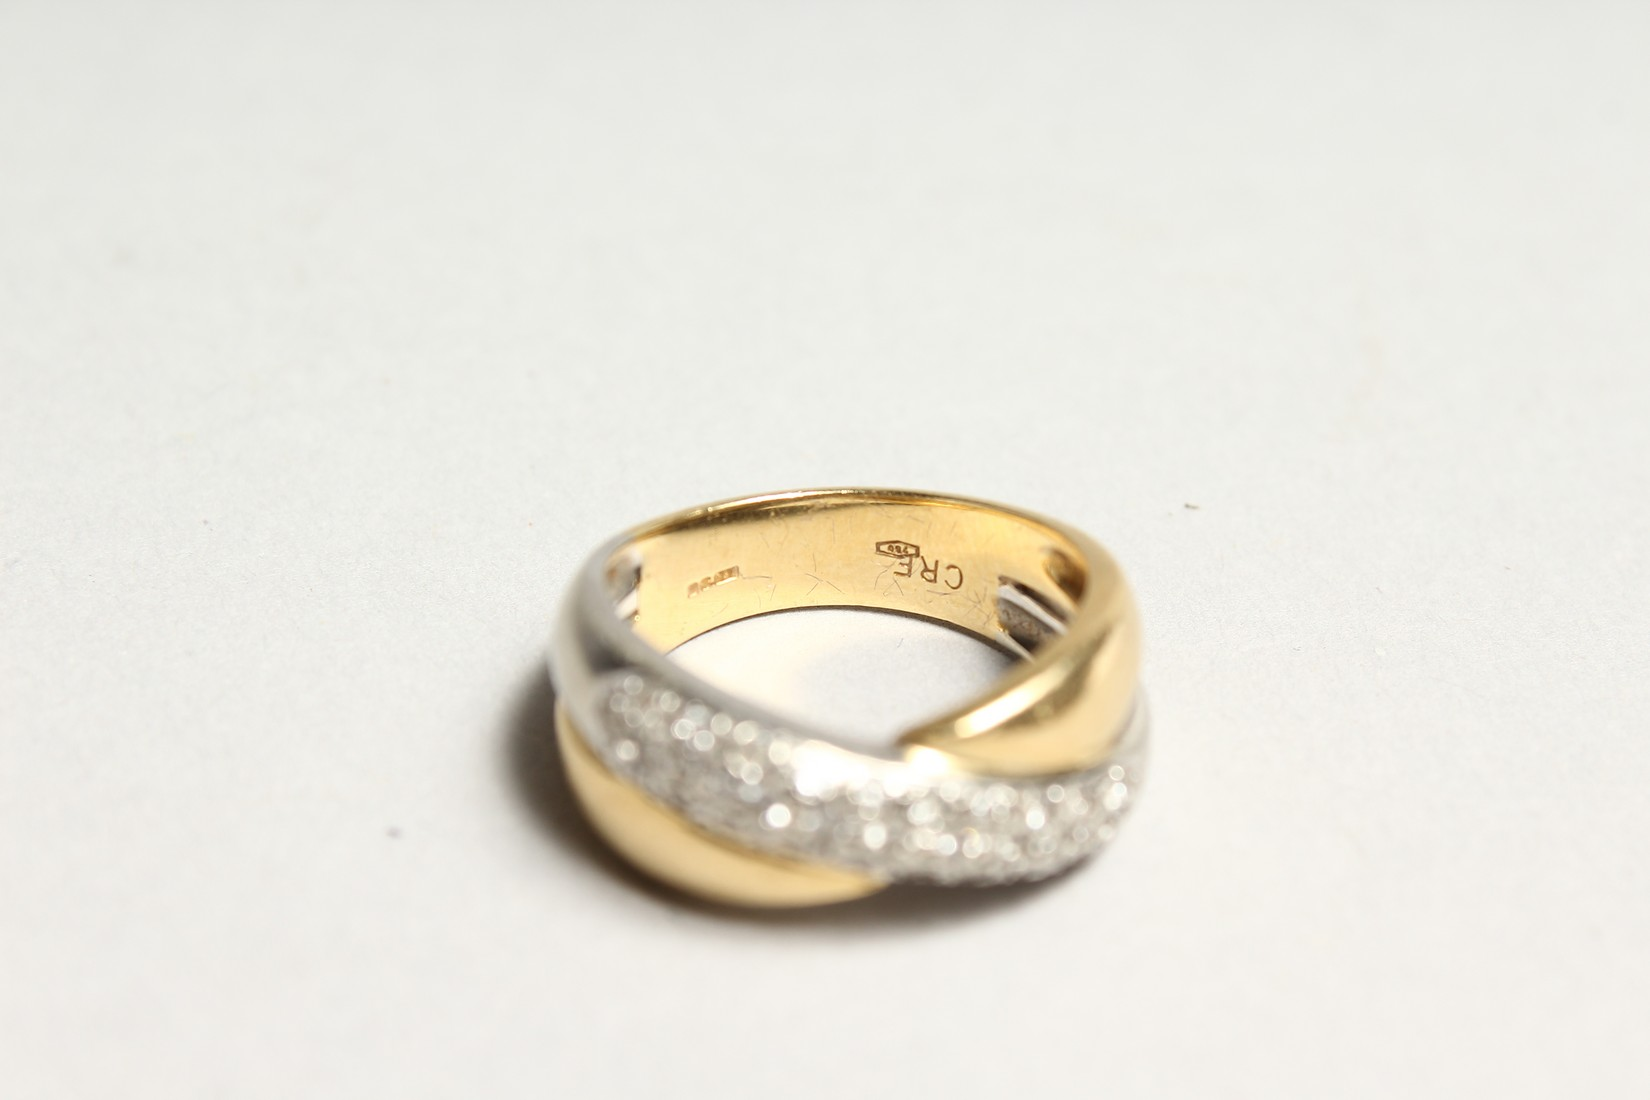 AN 18CT GOLD DIAMOND SET CROSS OVER RING - Image 6 of 6